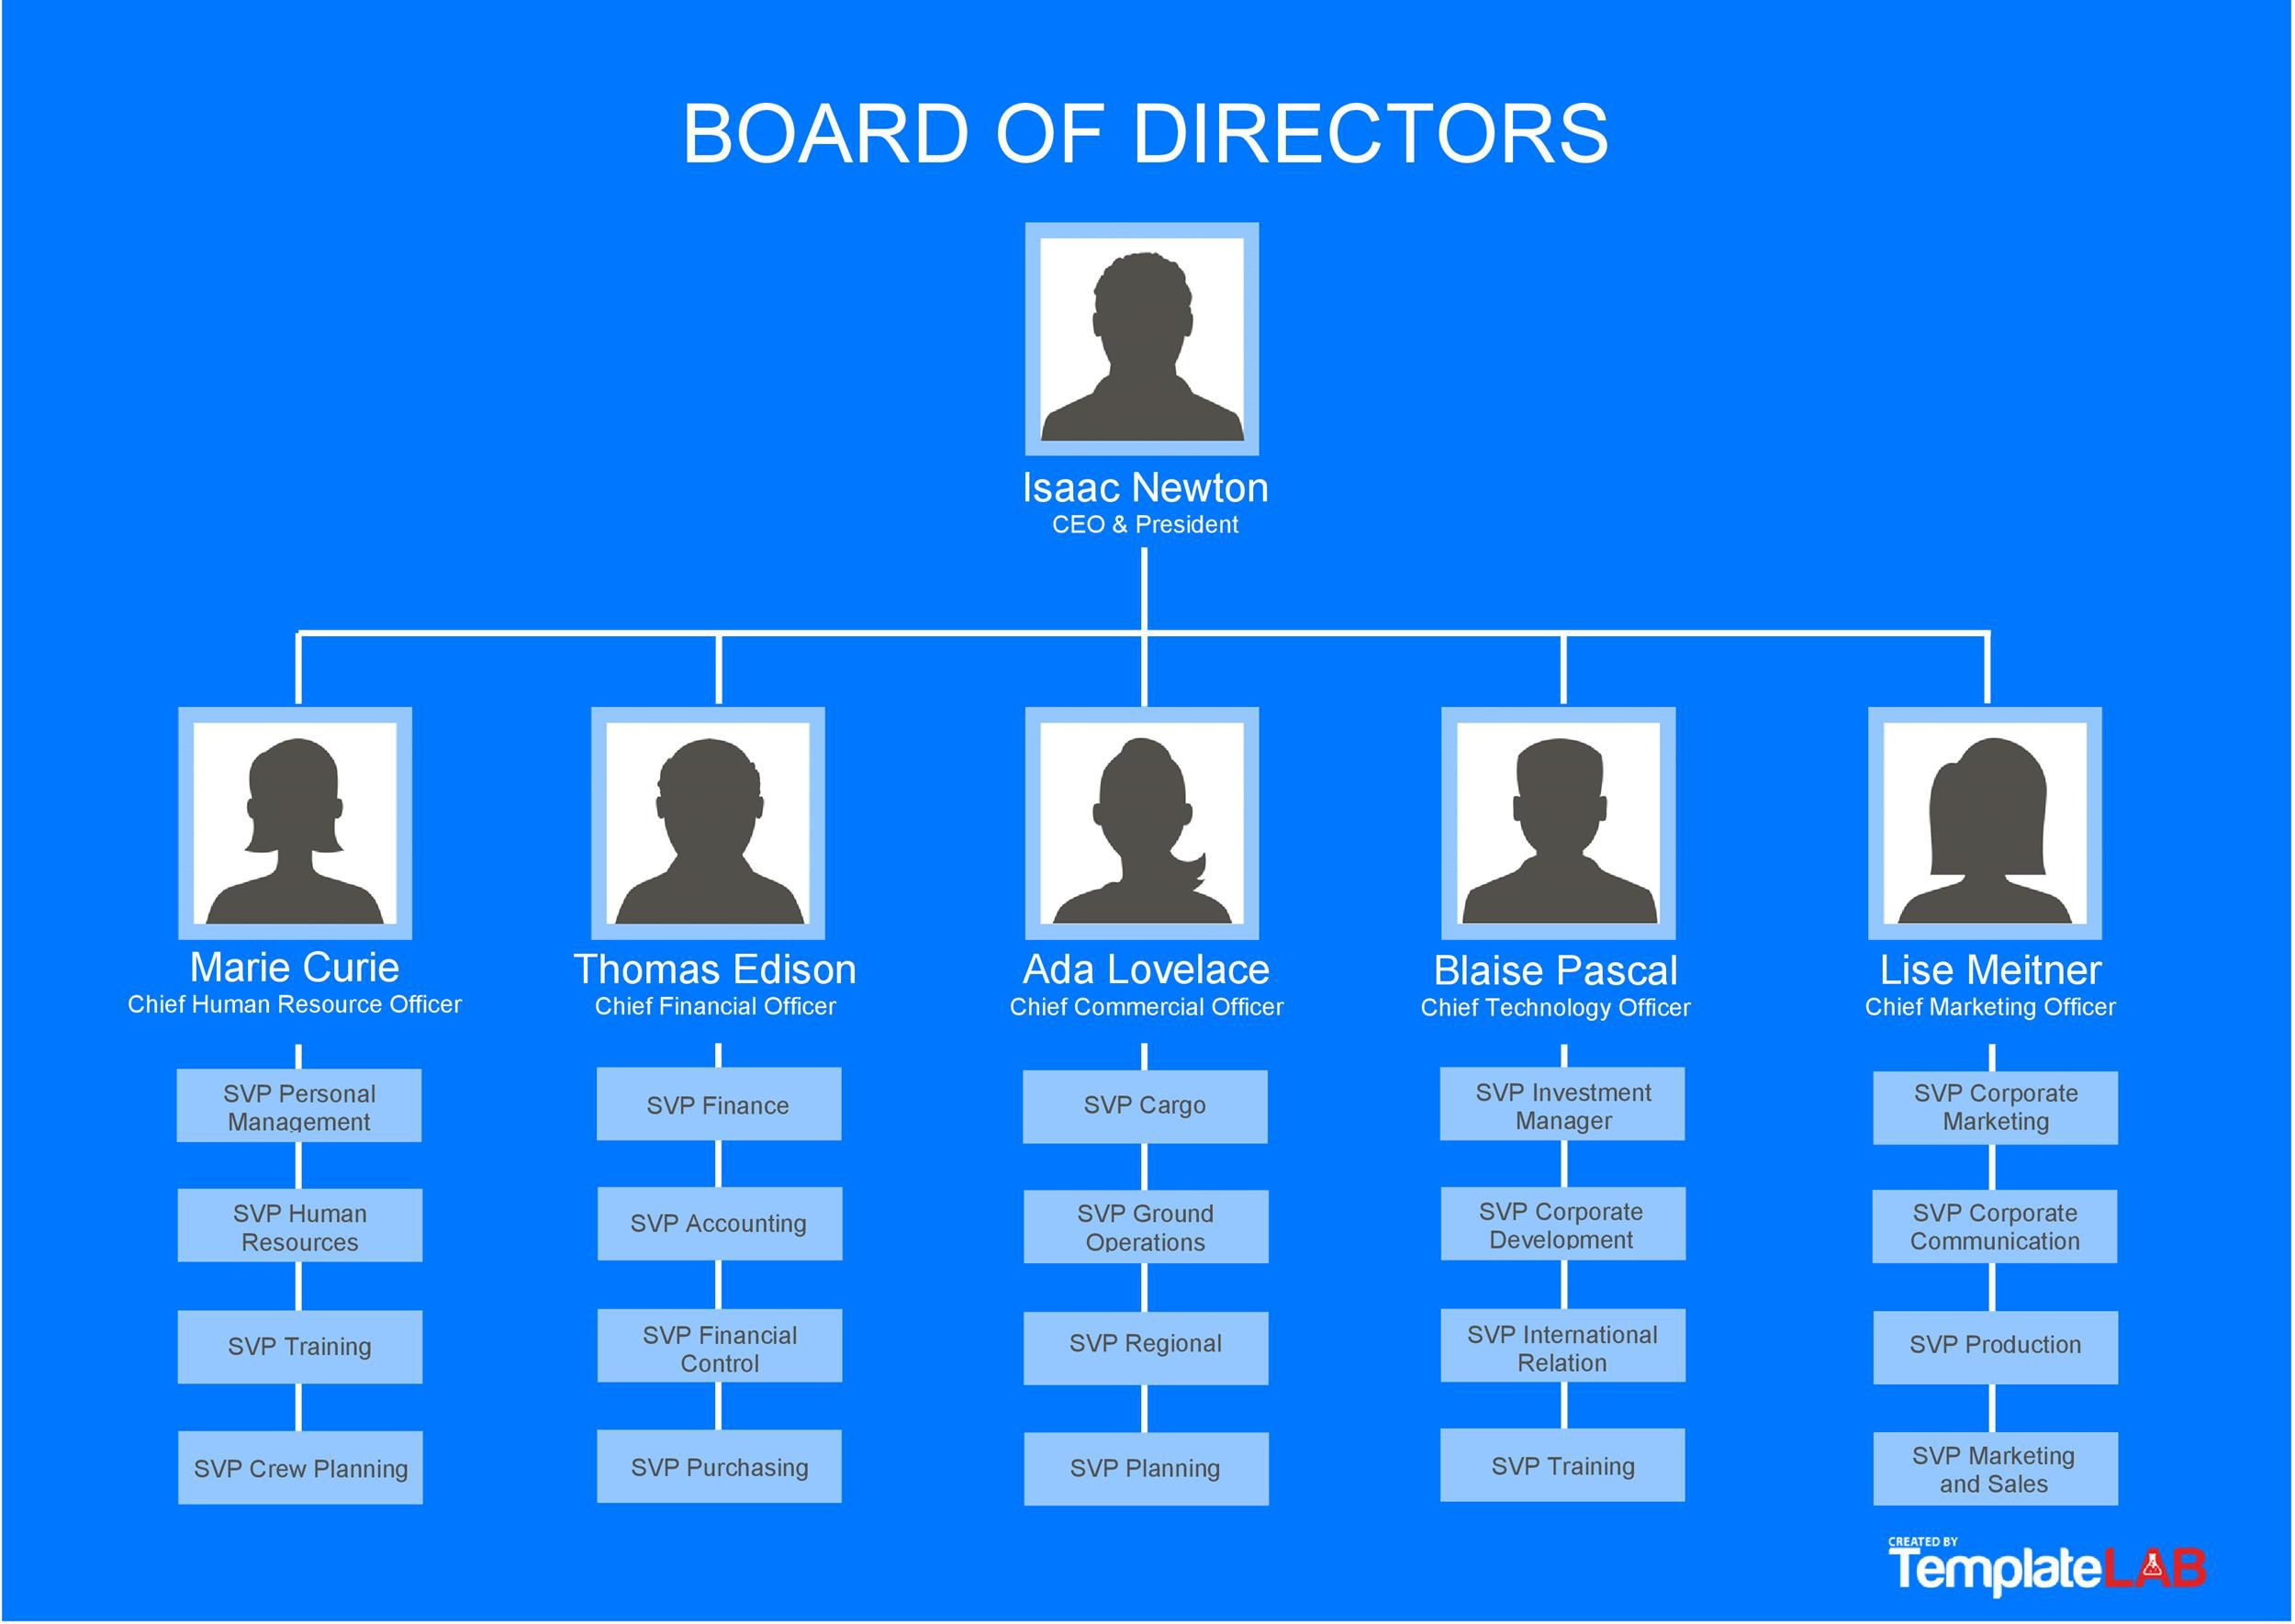 002 Singular Hierarchy Organizational Chart Template Word Picture  Hierarchical Organization -Full